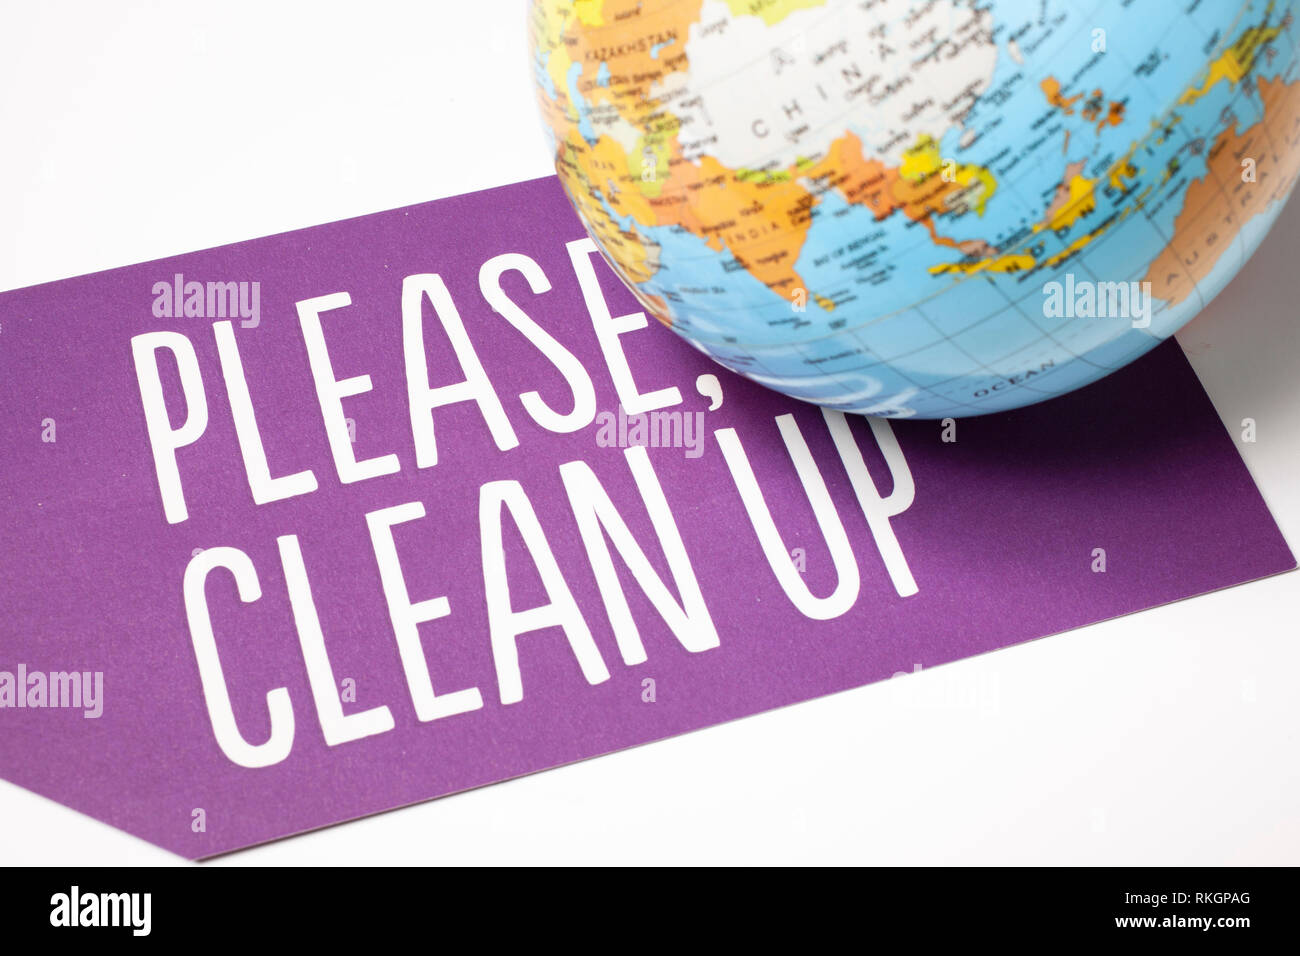 clean up the world - ecological concept - Stock Image